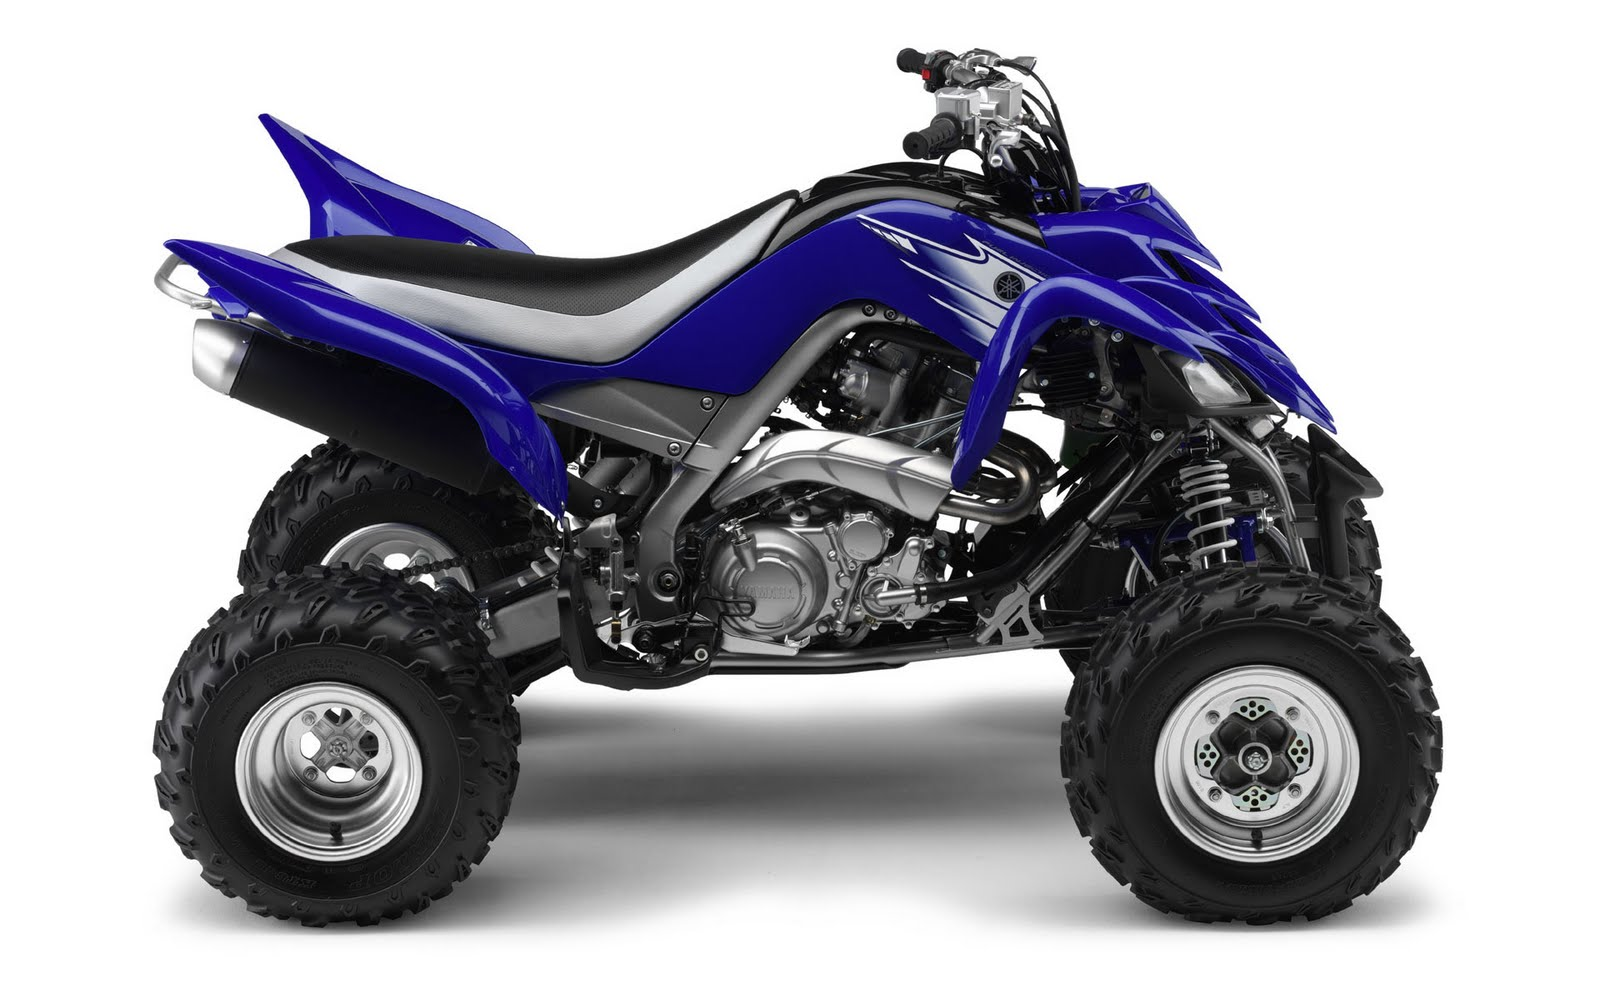 Yamaha ATV wallpapers Wallpaper Hd Black 1600x1000